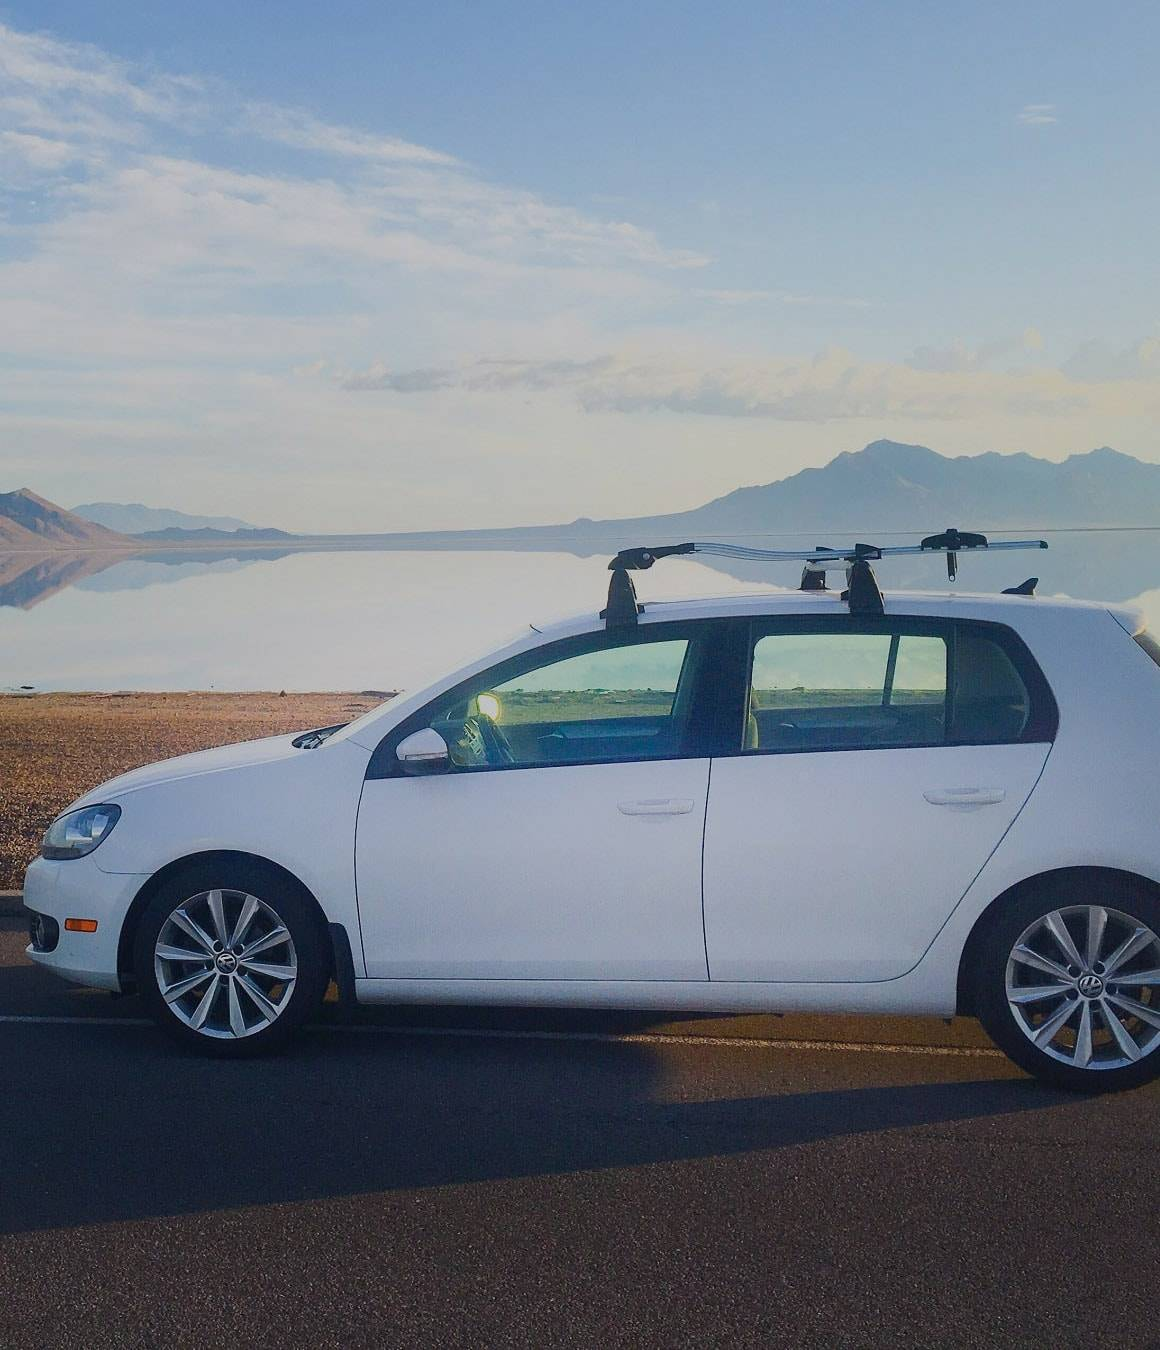 Compare Volkswagen insurance costs for all models